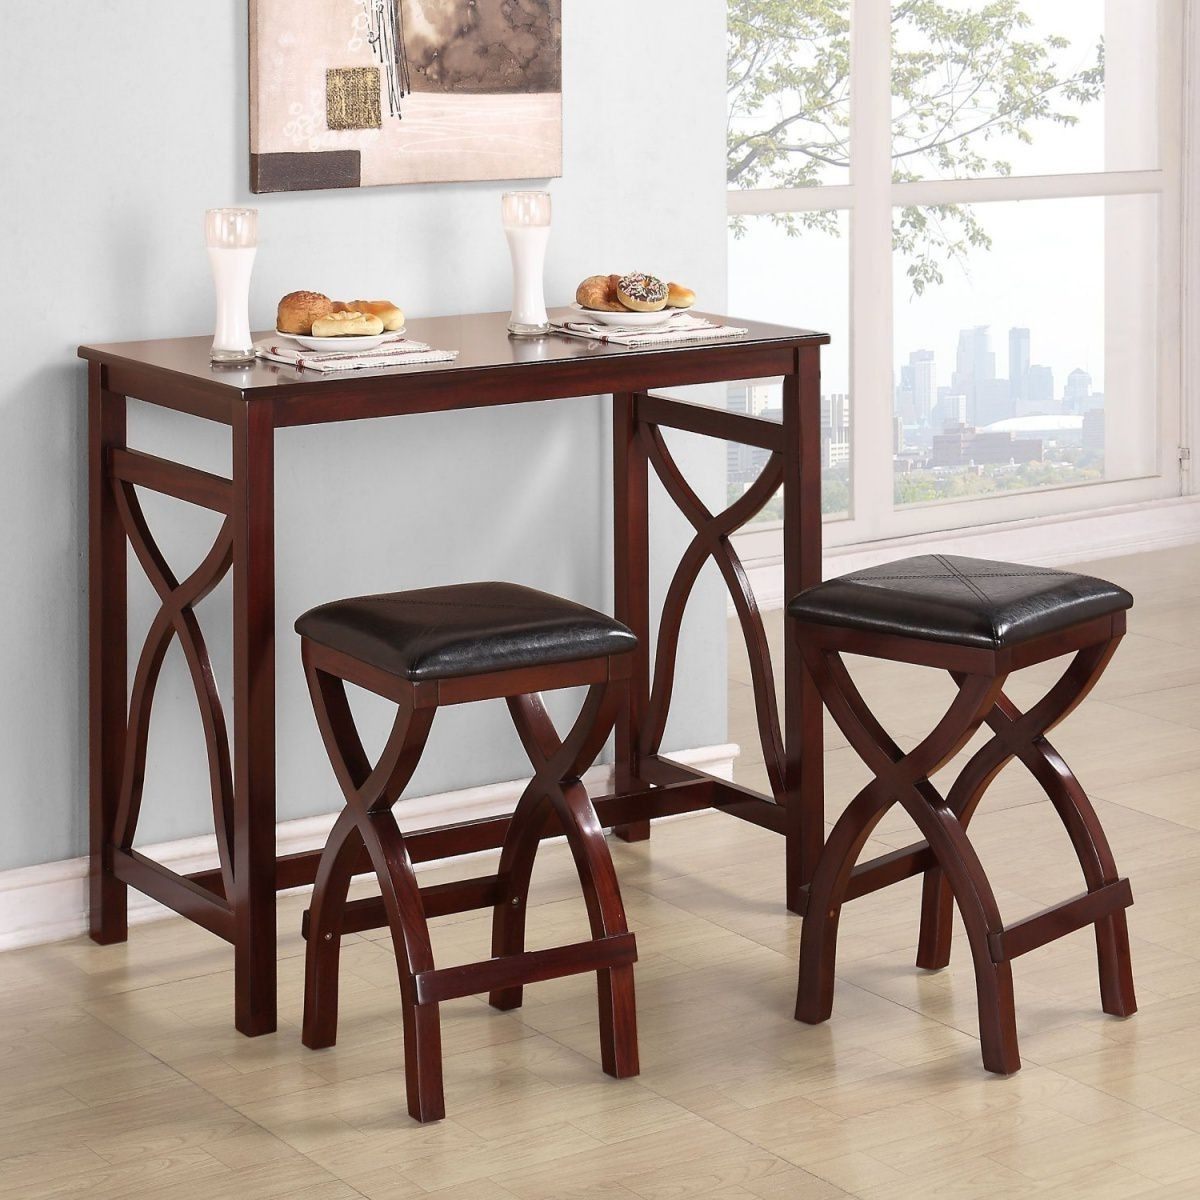 Latest Dining Tables For Small Rooms Elegant Small Dining Room Tables For With Small Dining Tables (View 6 of 25)